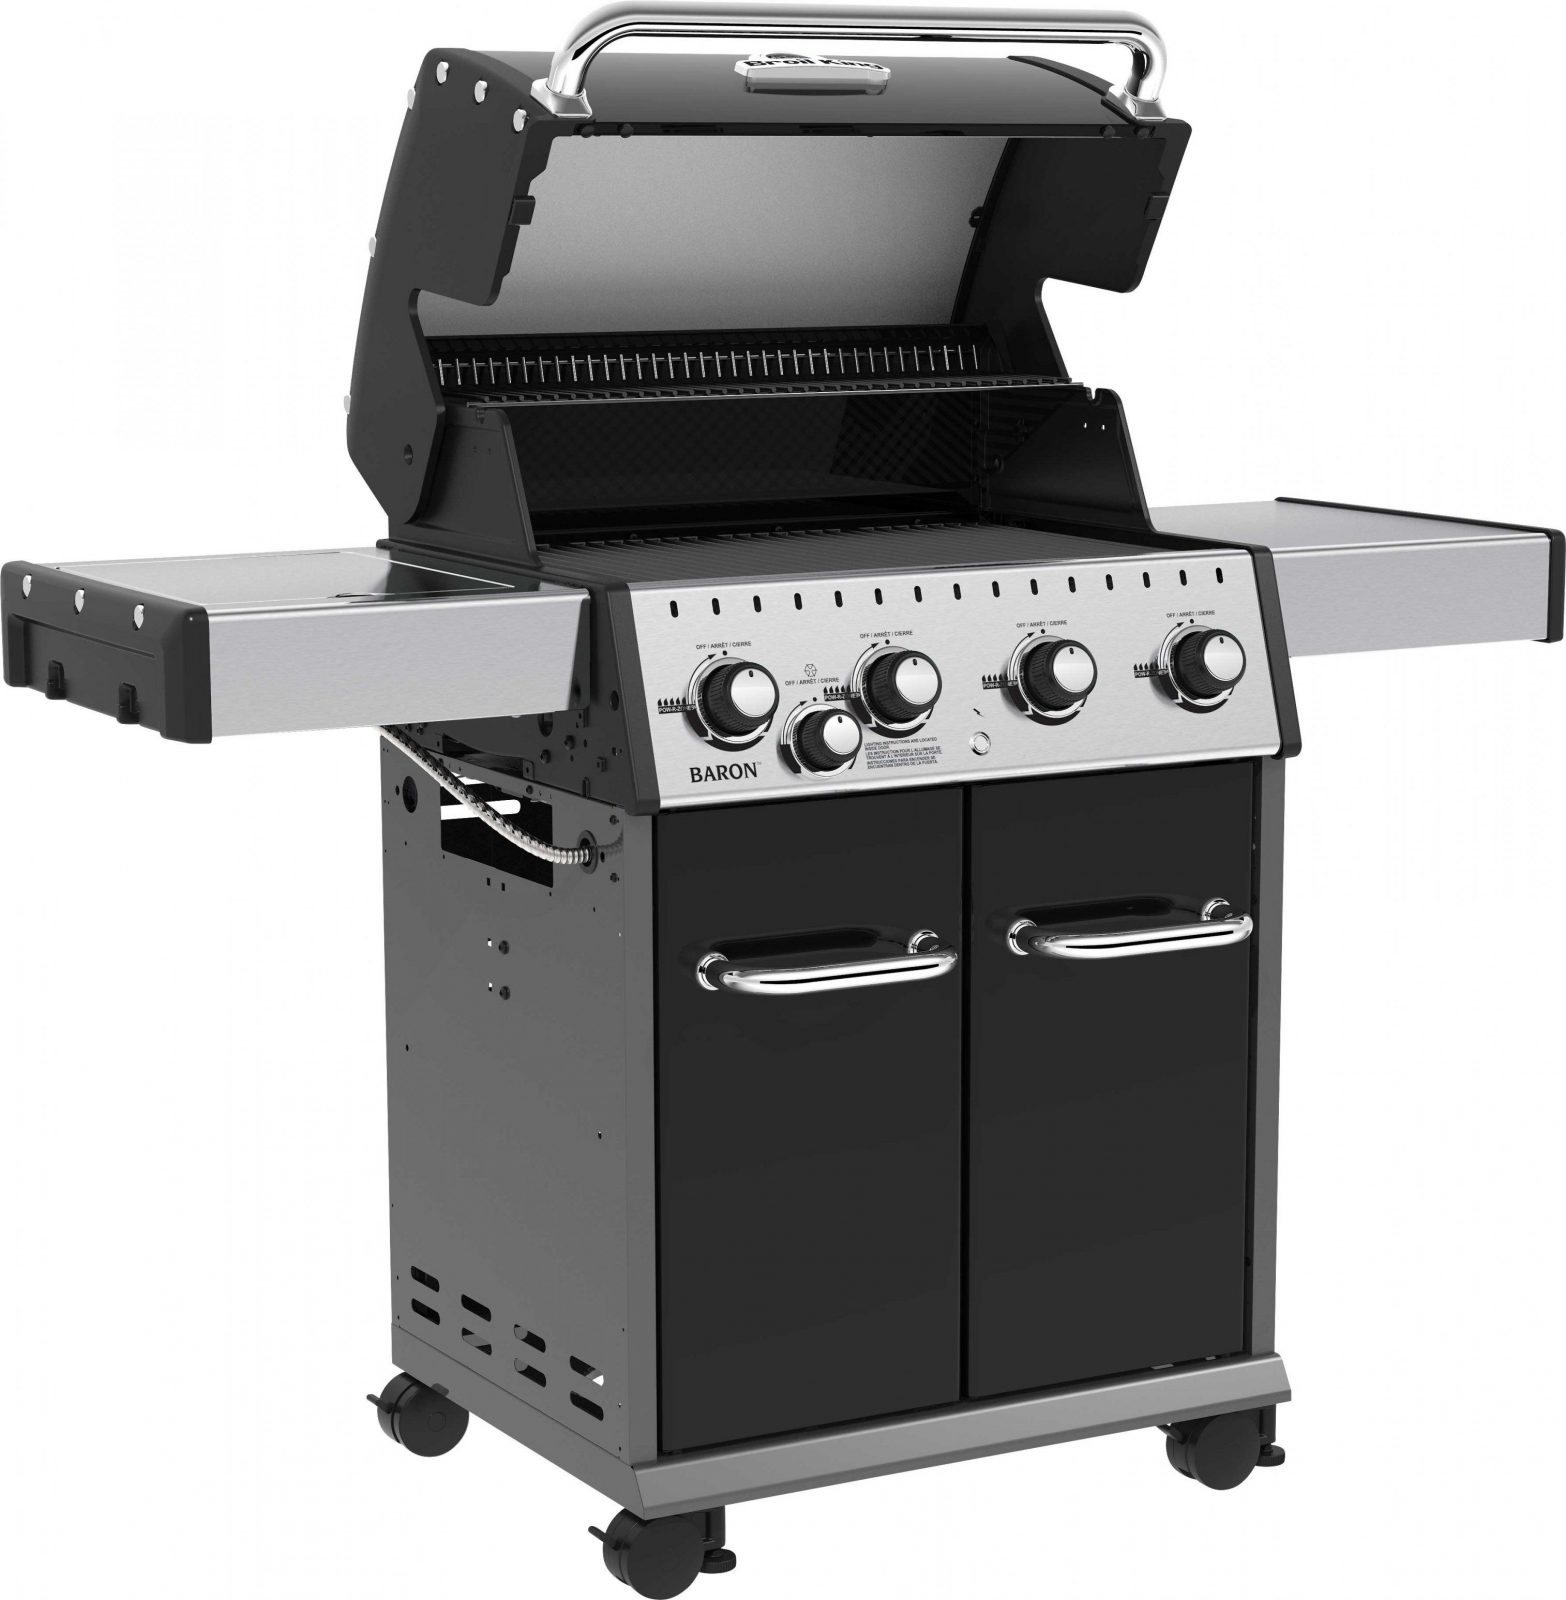 Broil King Bbq  Baron 440 Black  Auto Trail Ltd von Broil King Baron 440 Test Bild